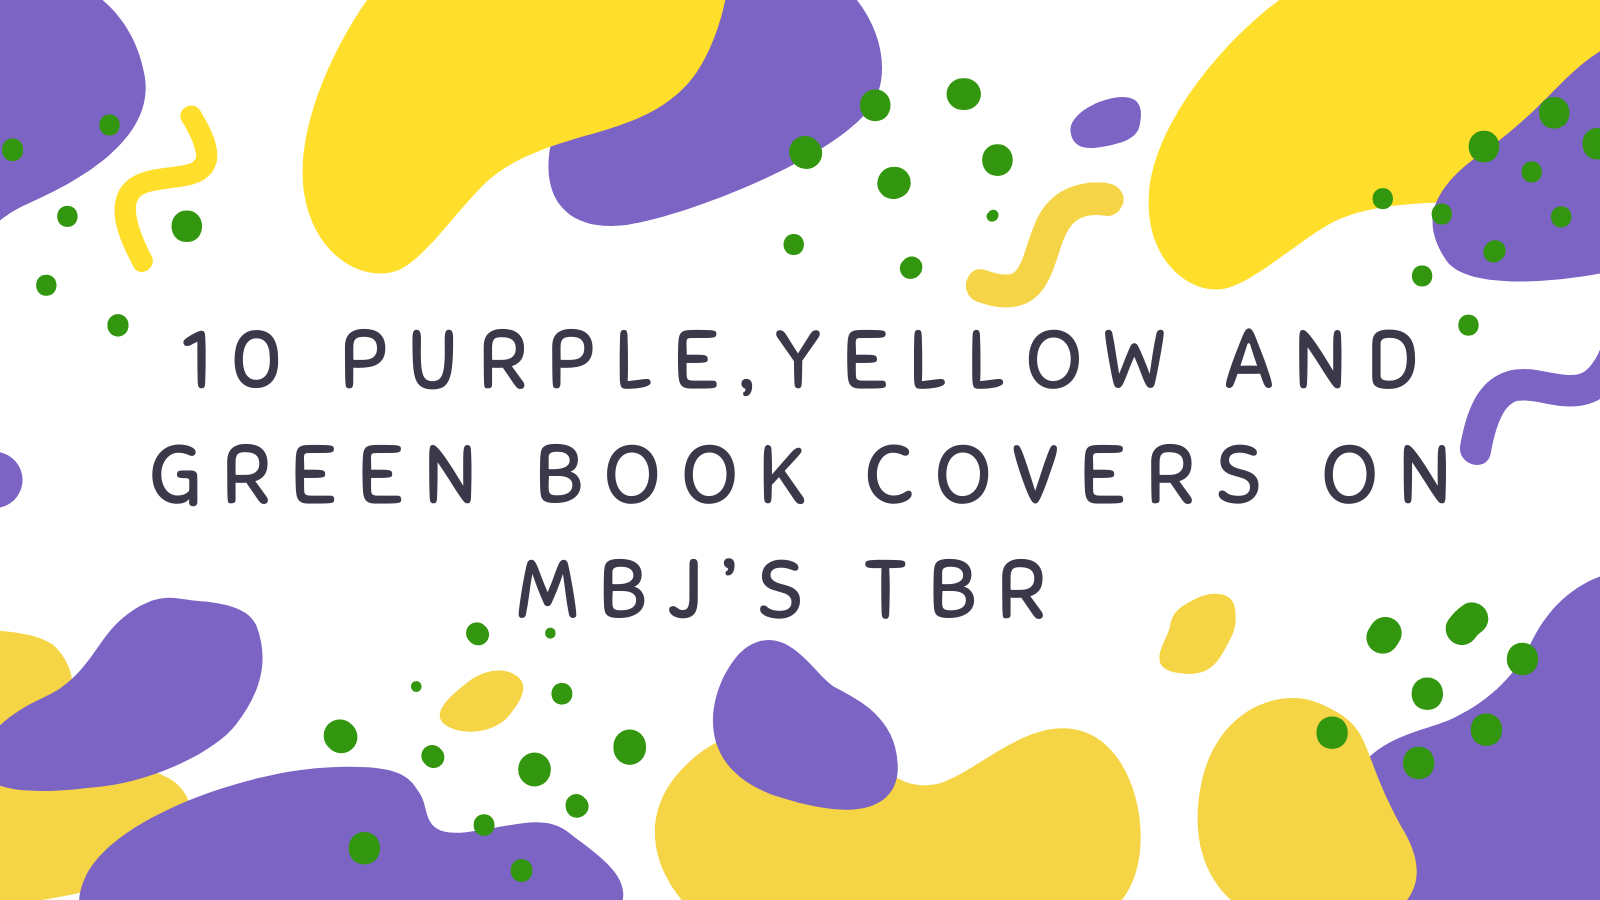 10 Purple Yellow and Green book covers on MBJ's TBR